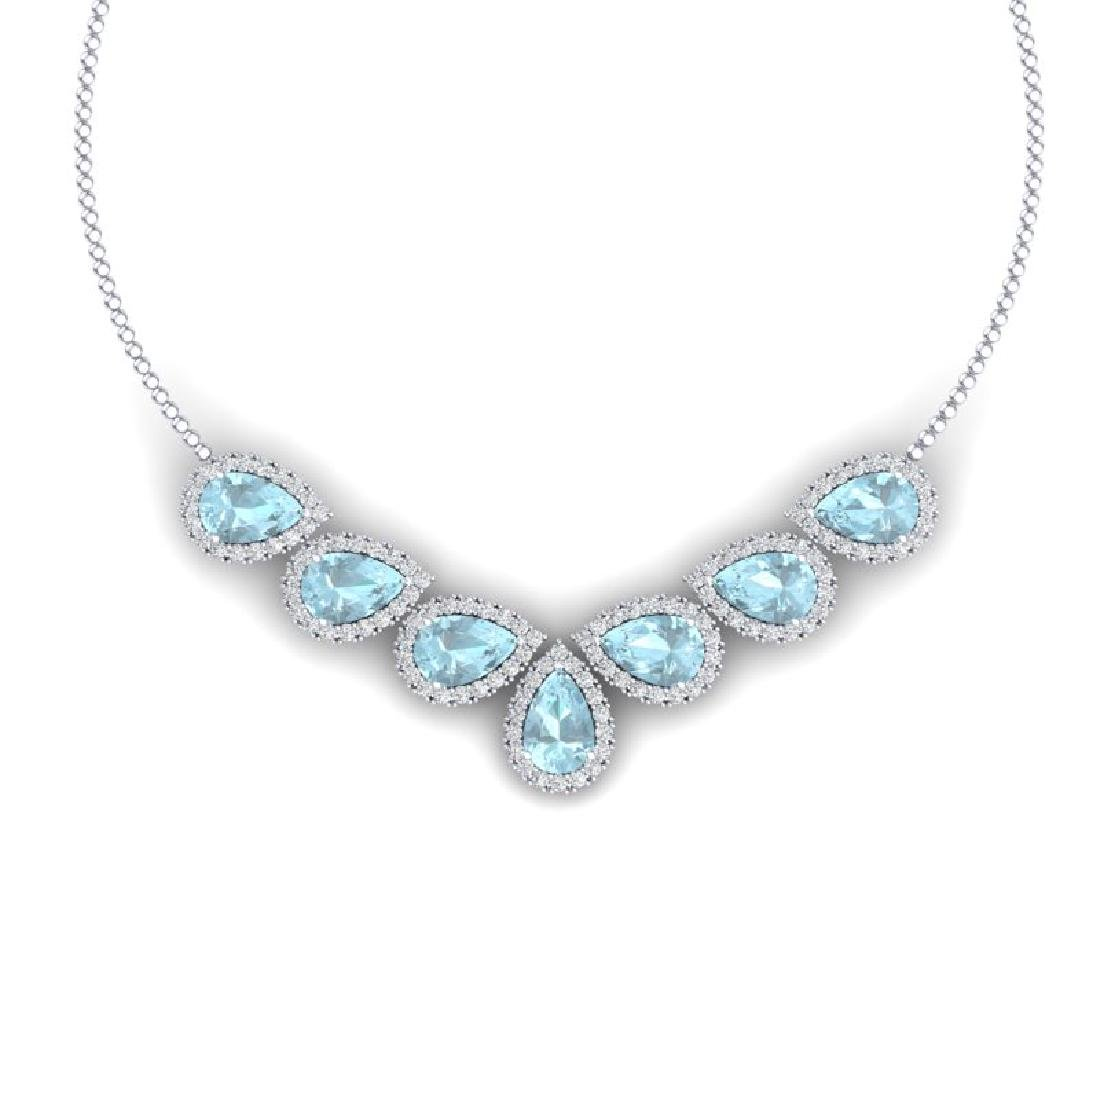 36.24 CTW Royalty Sky Topaz & VS Diamond Necklace 18K